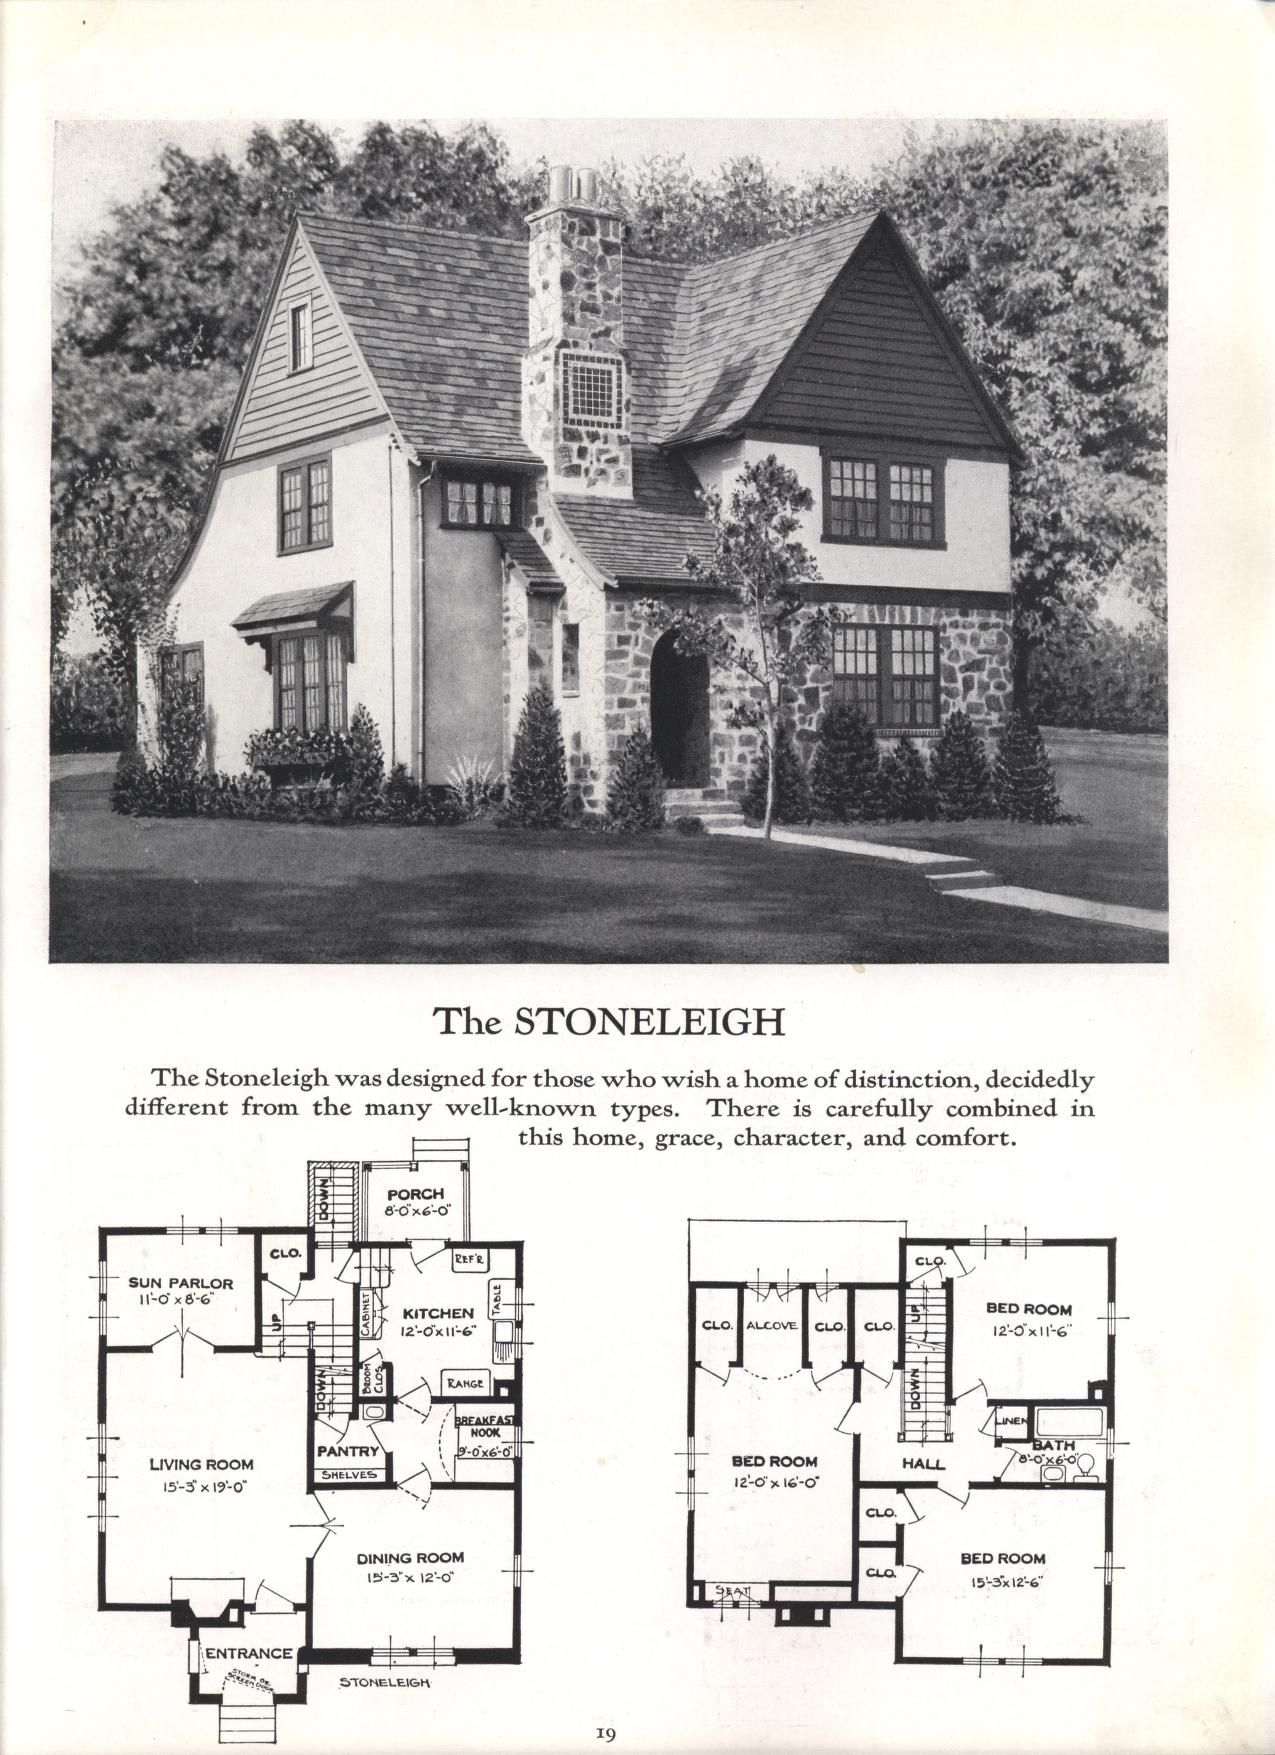 Better Homes At Lower Cost No 17 By Standard Homes Co Publication Date 1930 The Stoneleigh Small House Floor Plans Cottage Floor Plans House Plans